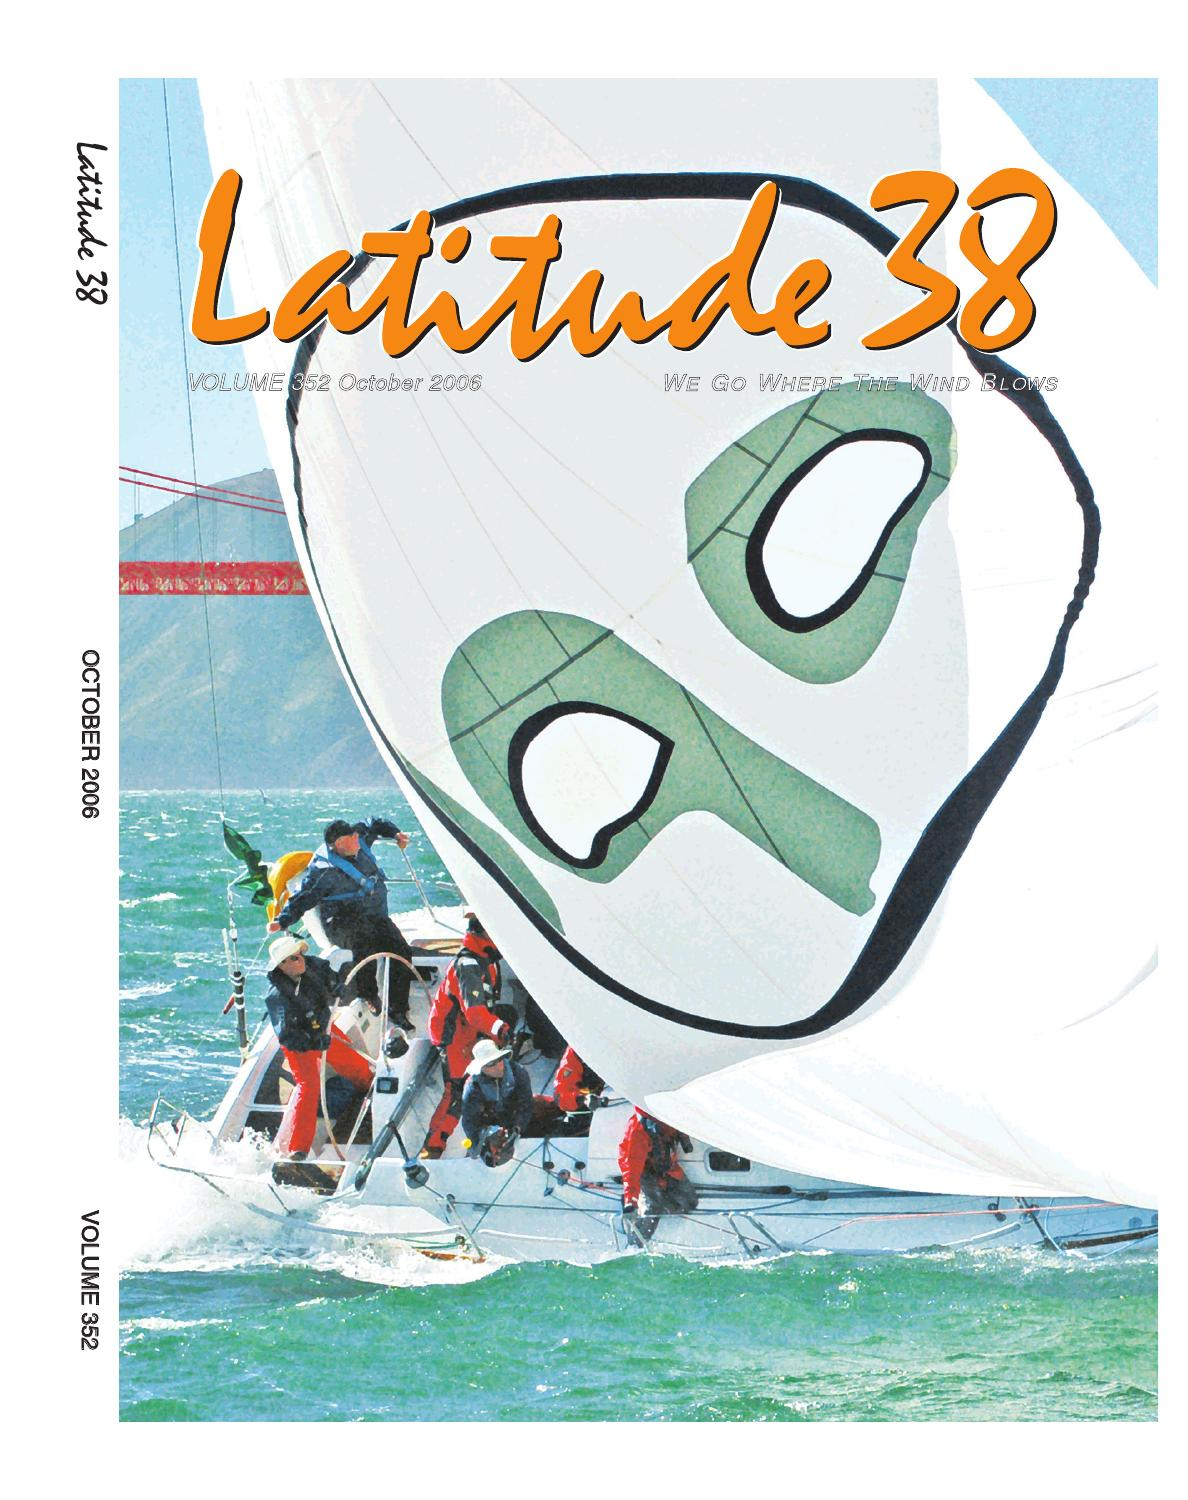 Latitude 38 October 2006 By Media Llc Issuu Jacob39s Ladder Schematic Http Userswfuedu Rollins Schematichtml